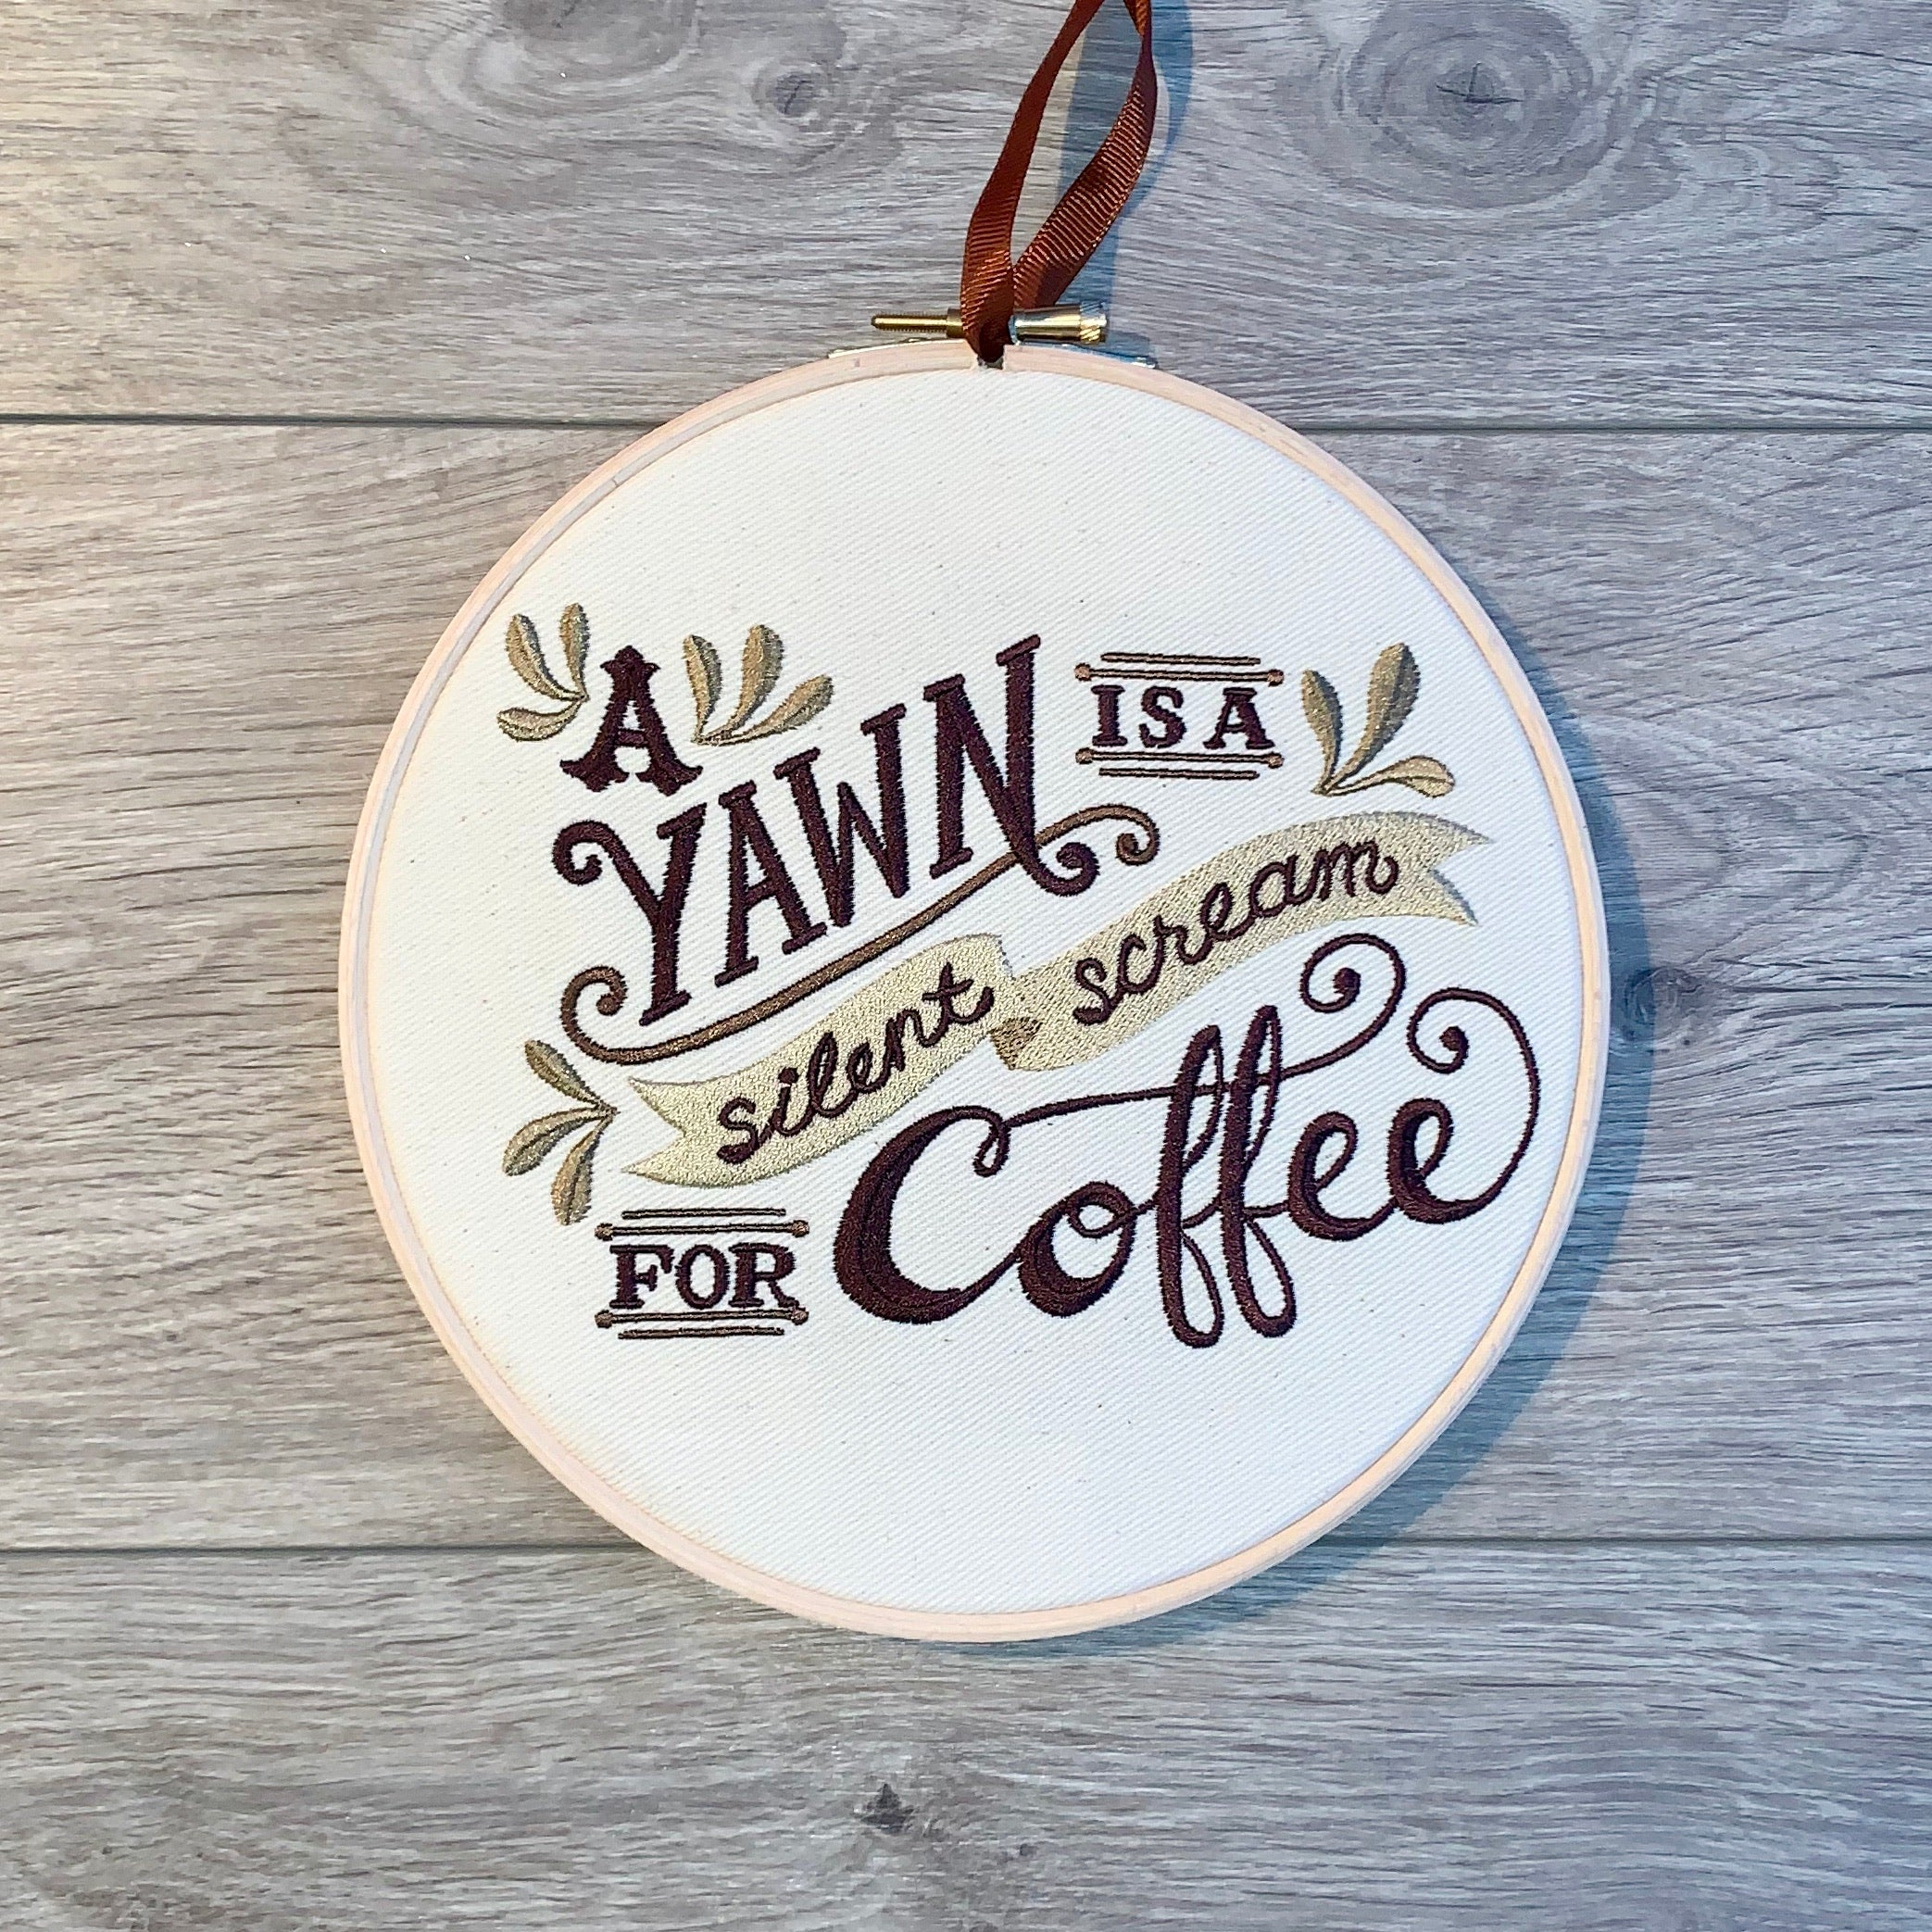 A yawn is a silent scream for Coffee, Embroidery hoop art